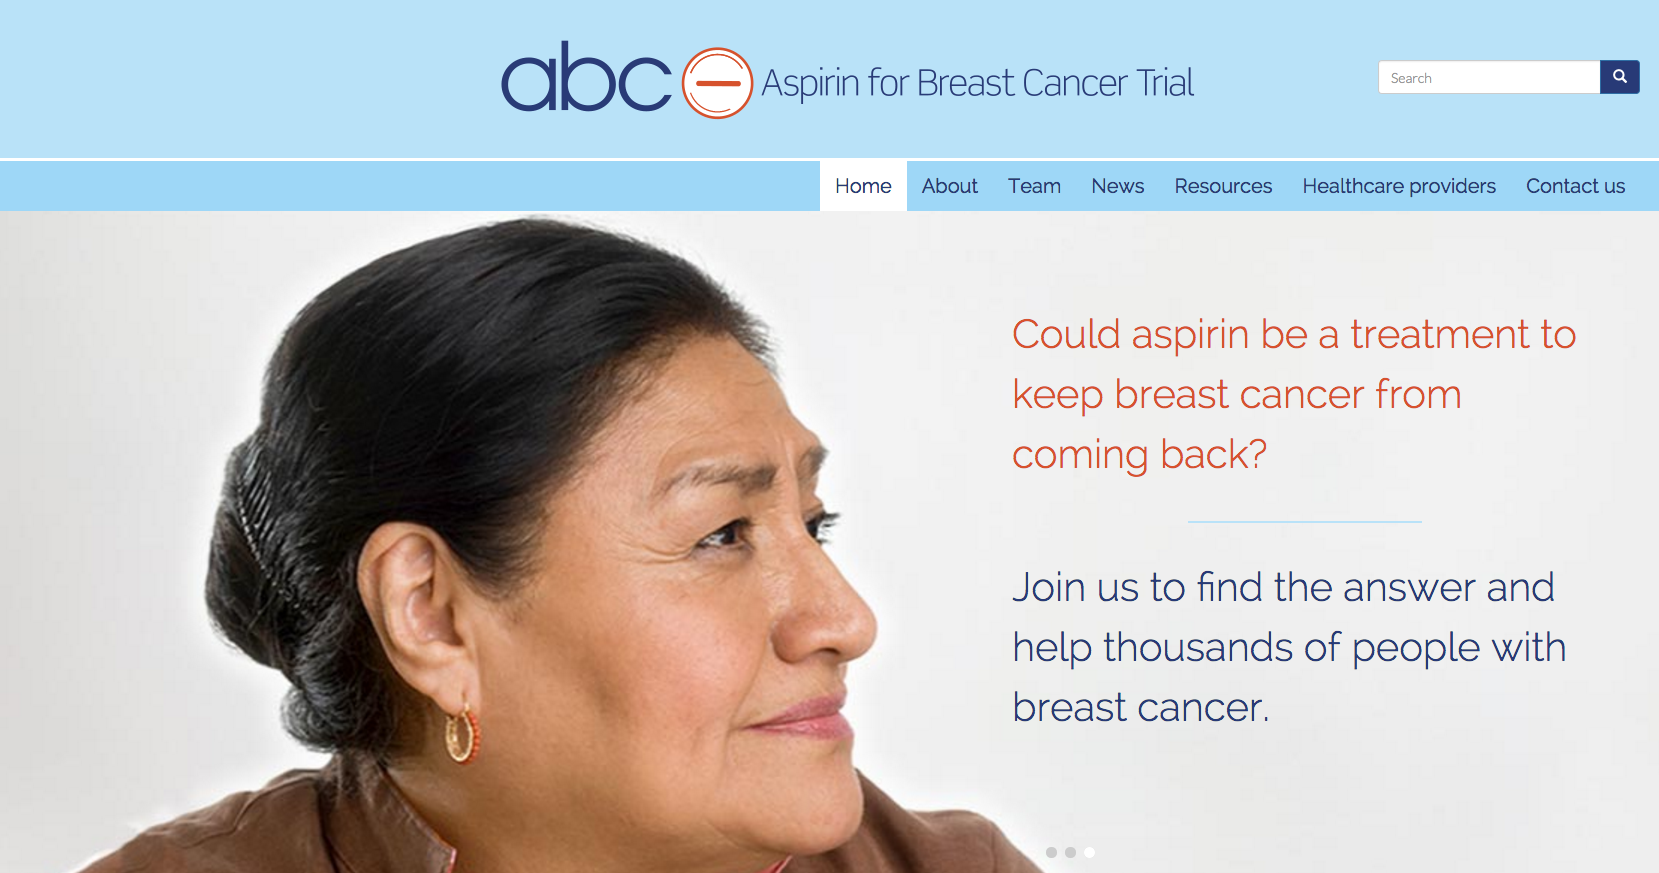 Image of Aspirin for Breast Cancer Trial homepage